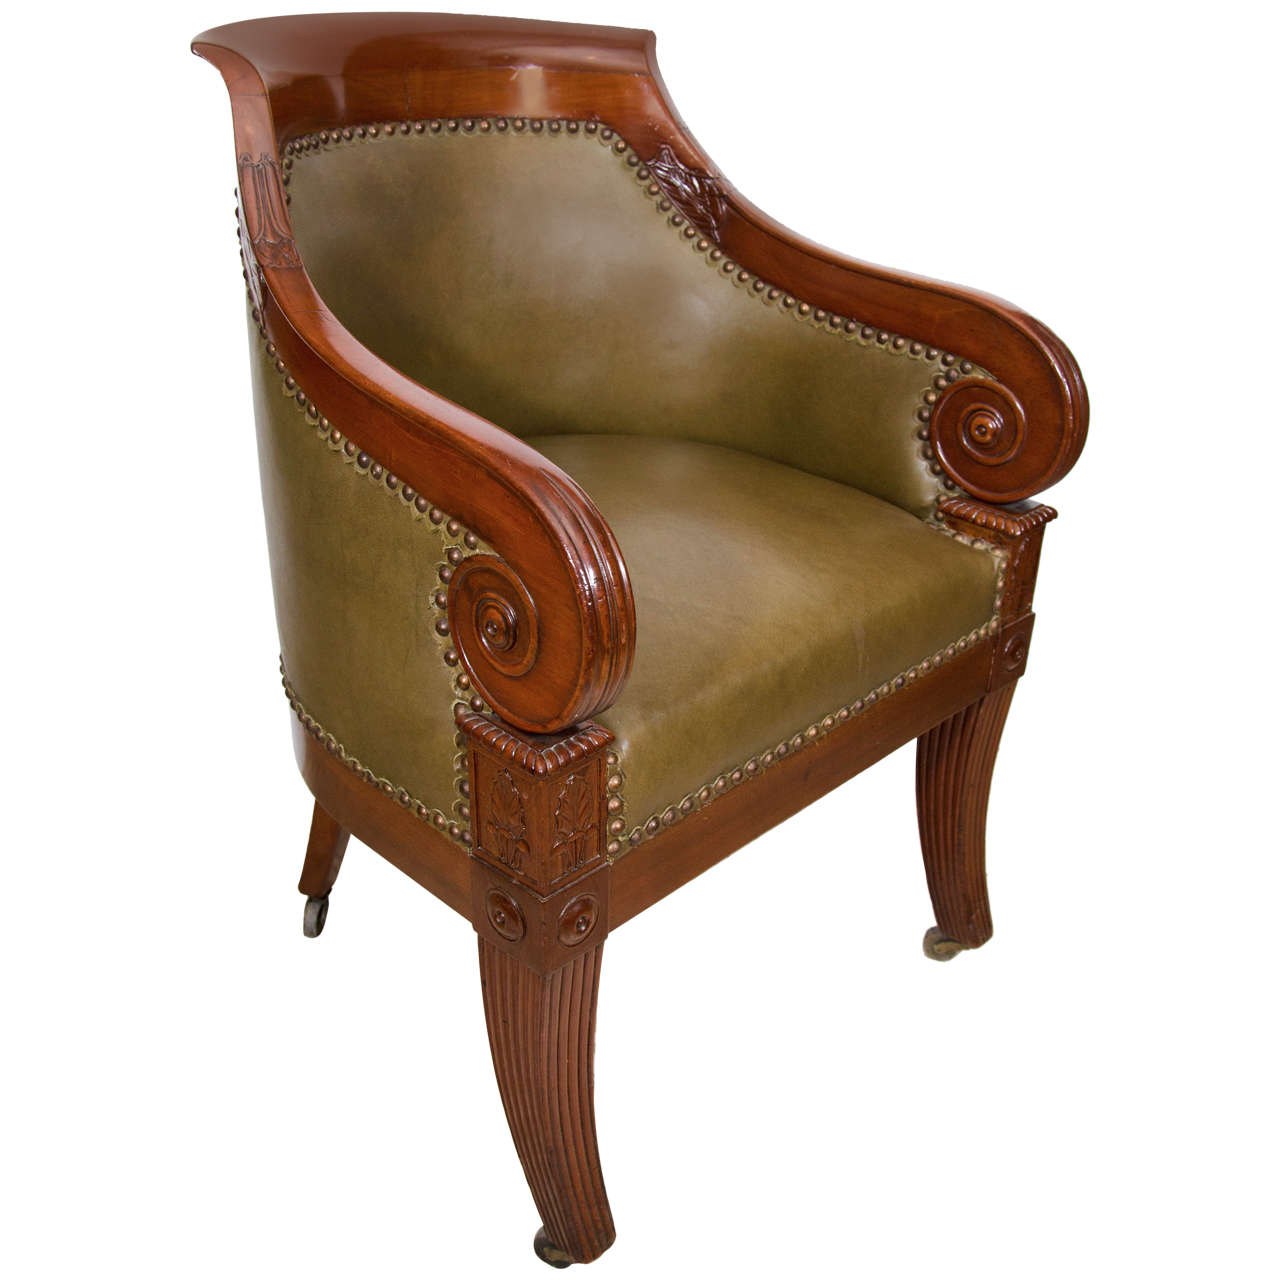 Regency Carved Mahogany Tub Chair 1 - Regency Carved Mahogany Tub Chair For Sale At 1stdibs